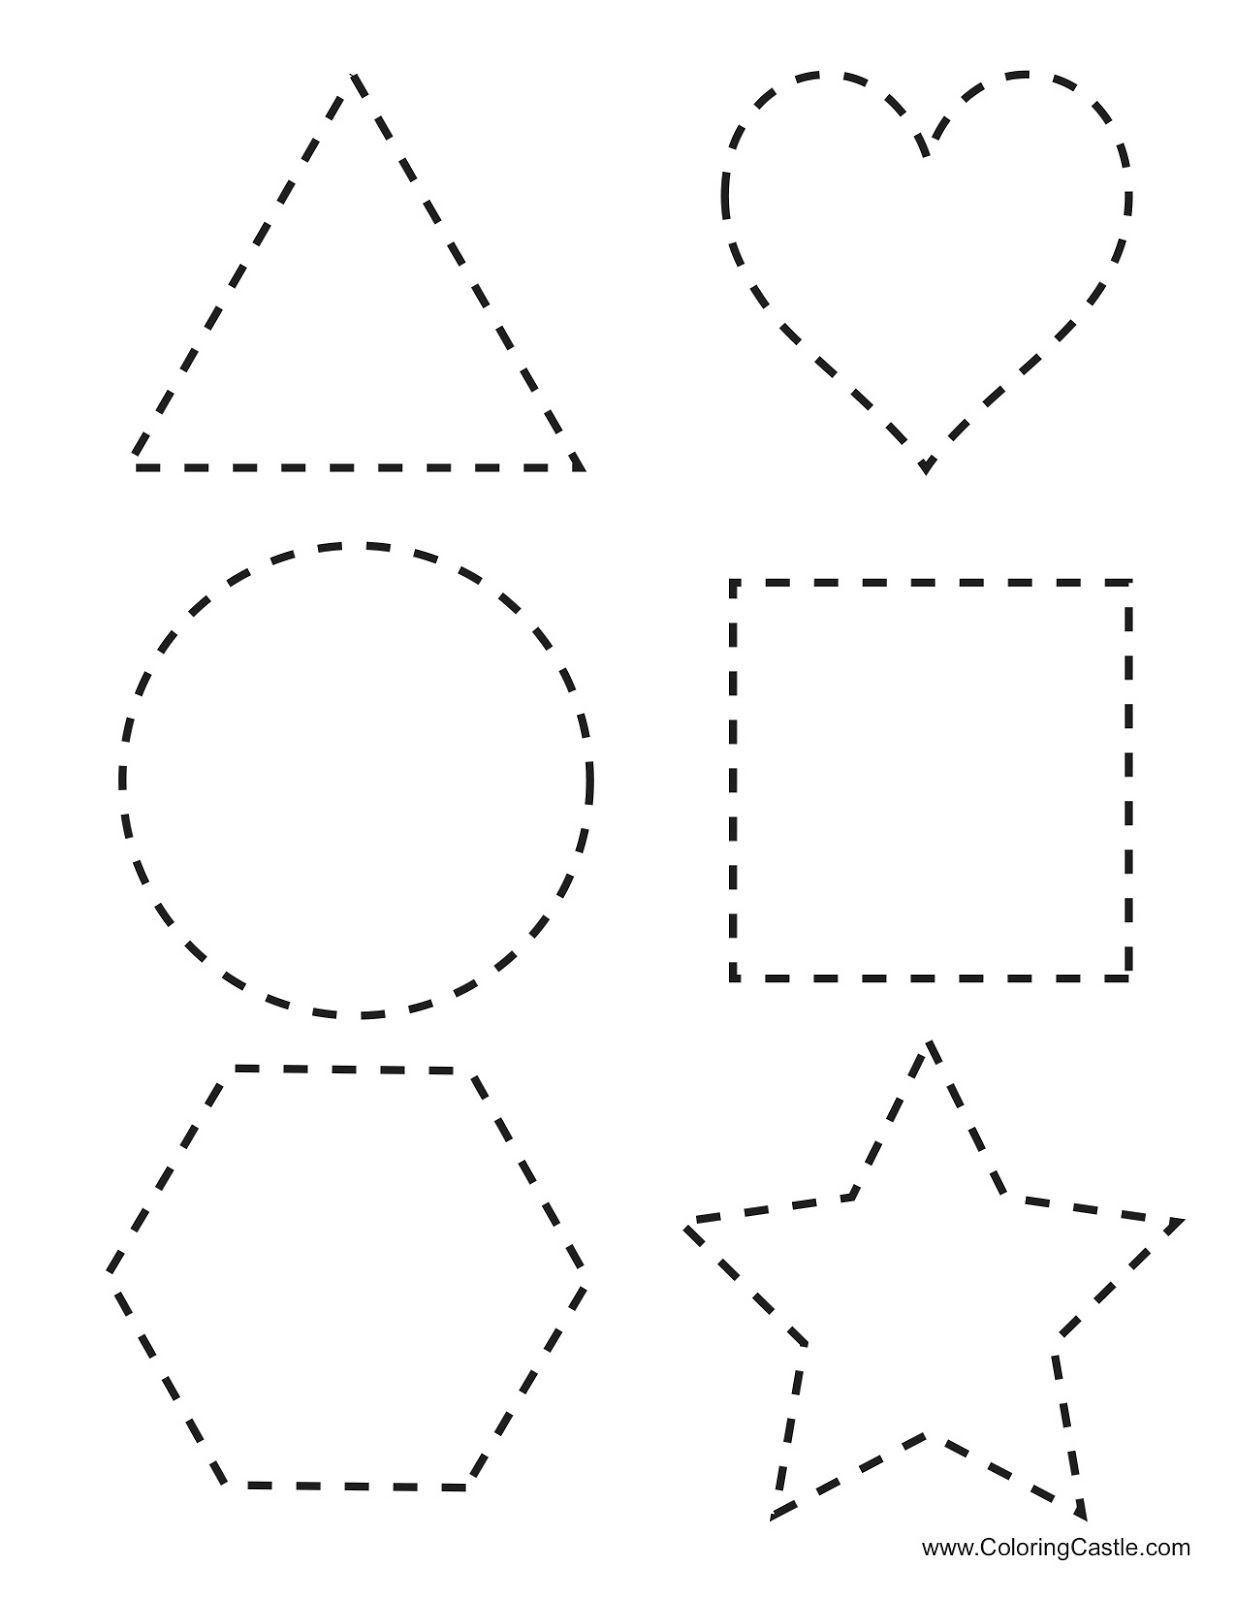 Tracing Shapes Printables | Tracing Shapes Download Here Six pertaining to Tracing Shapes And Letters